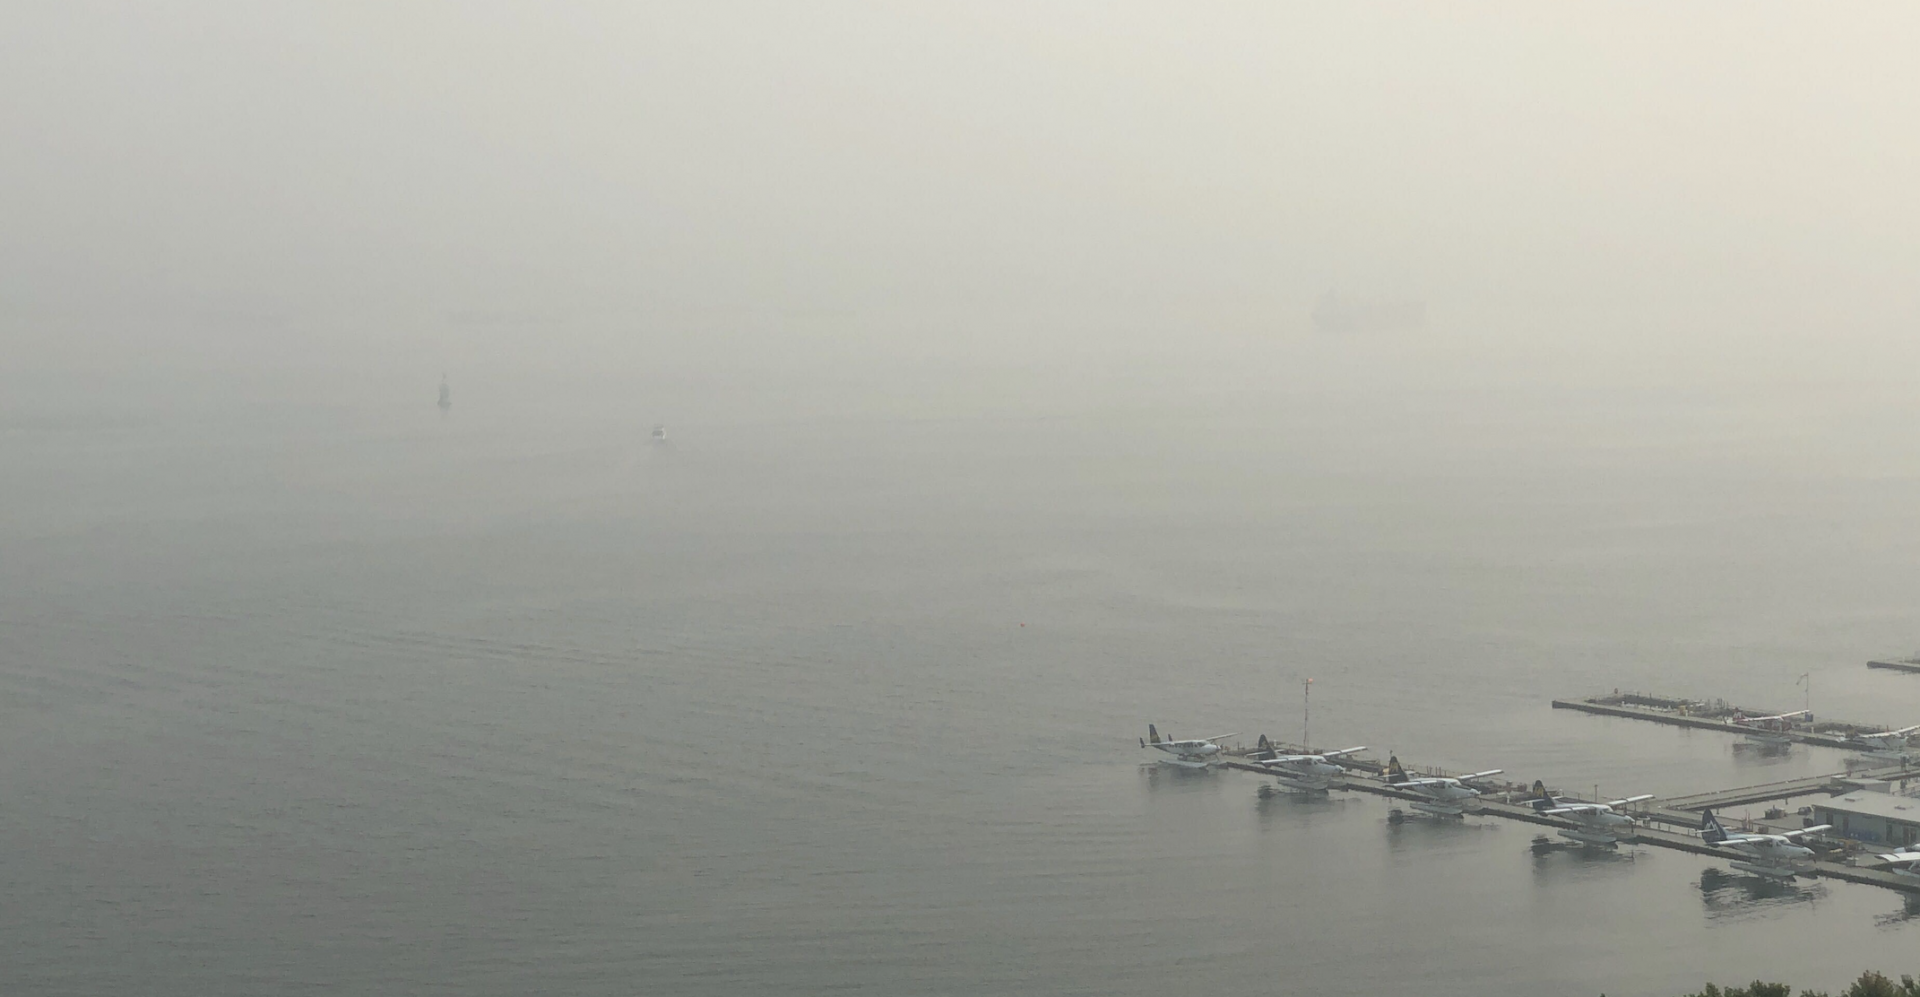 Vancouver has the worst air quality in the world right now among major cities